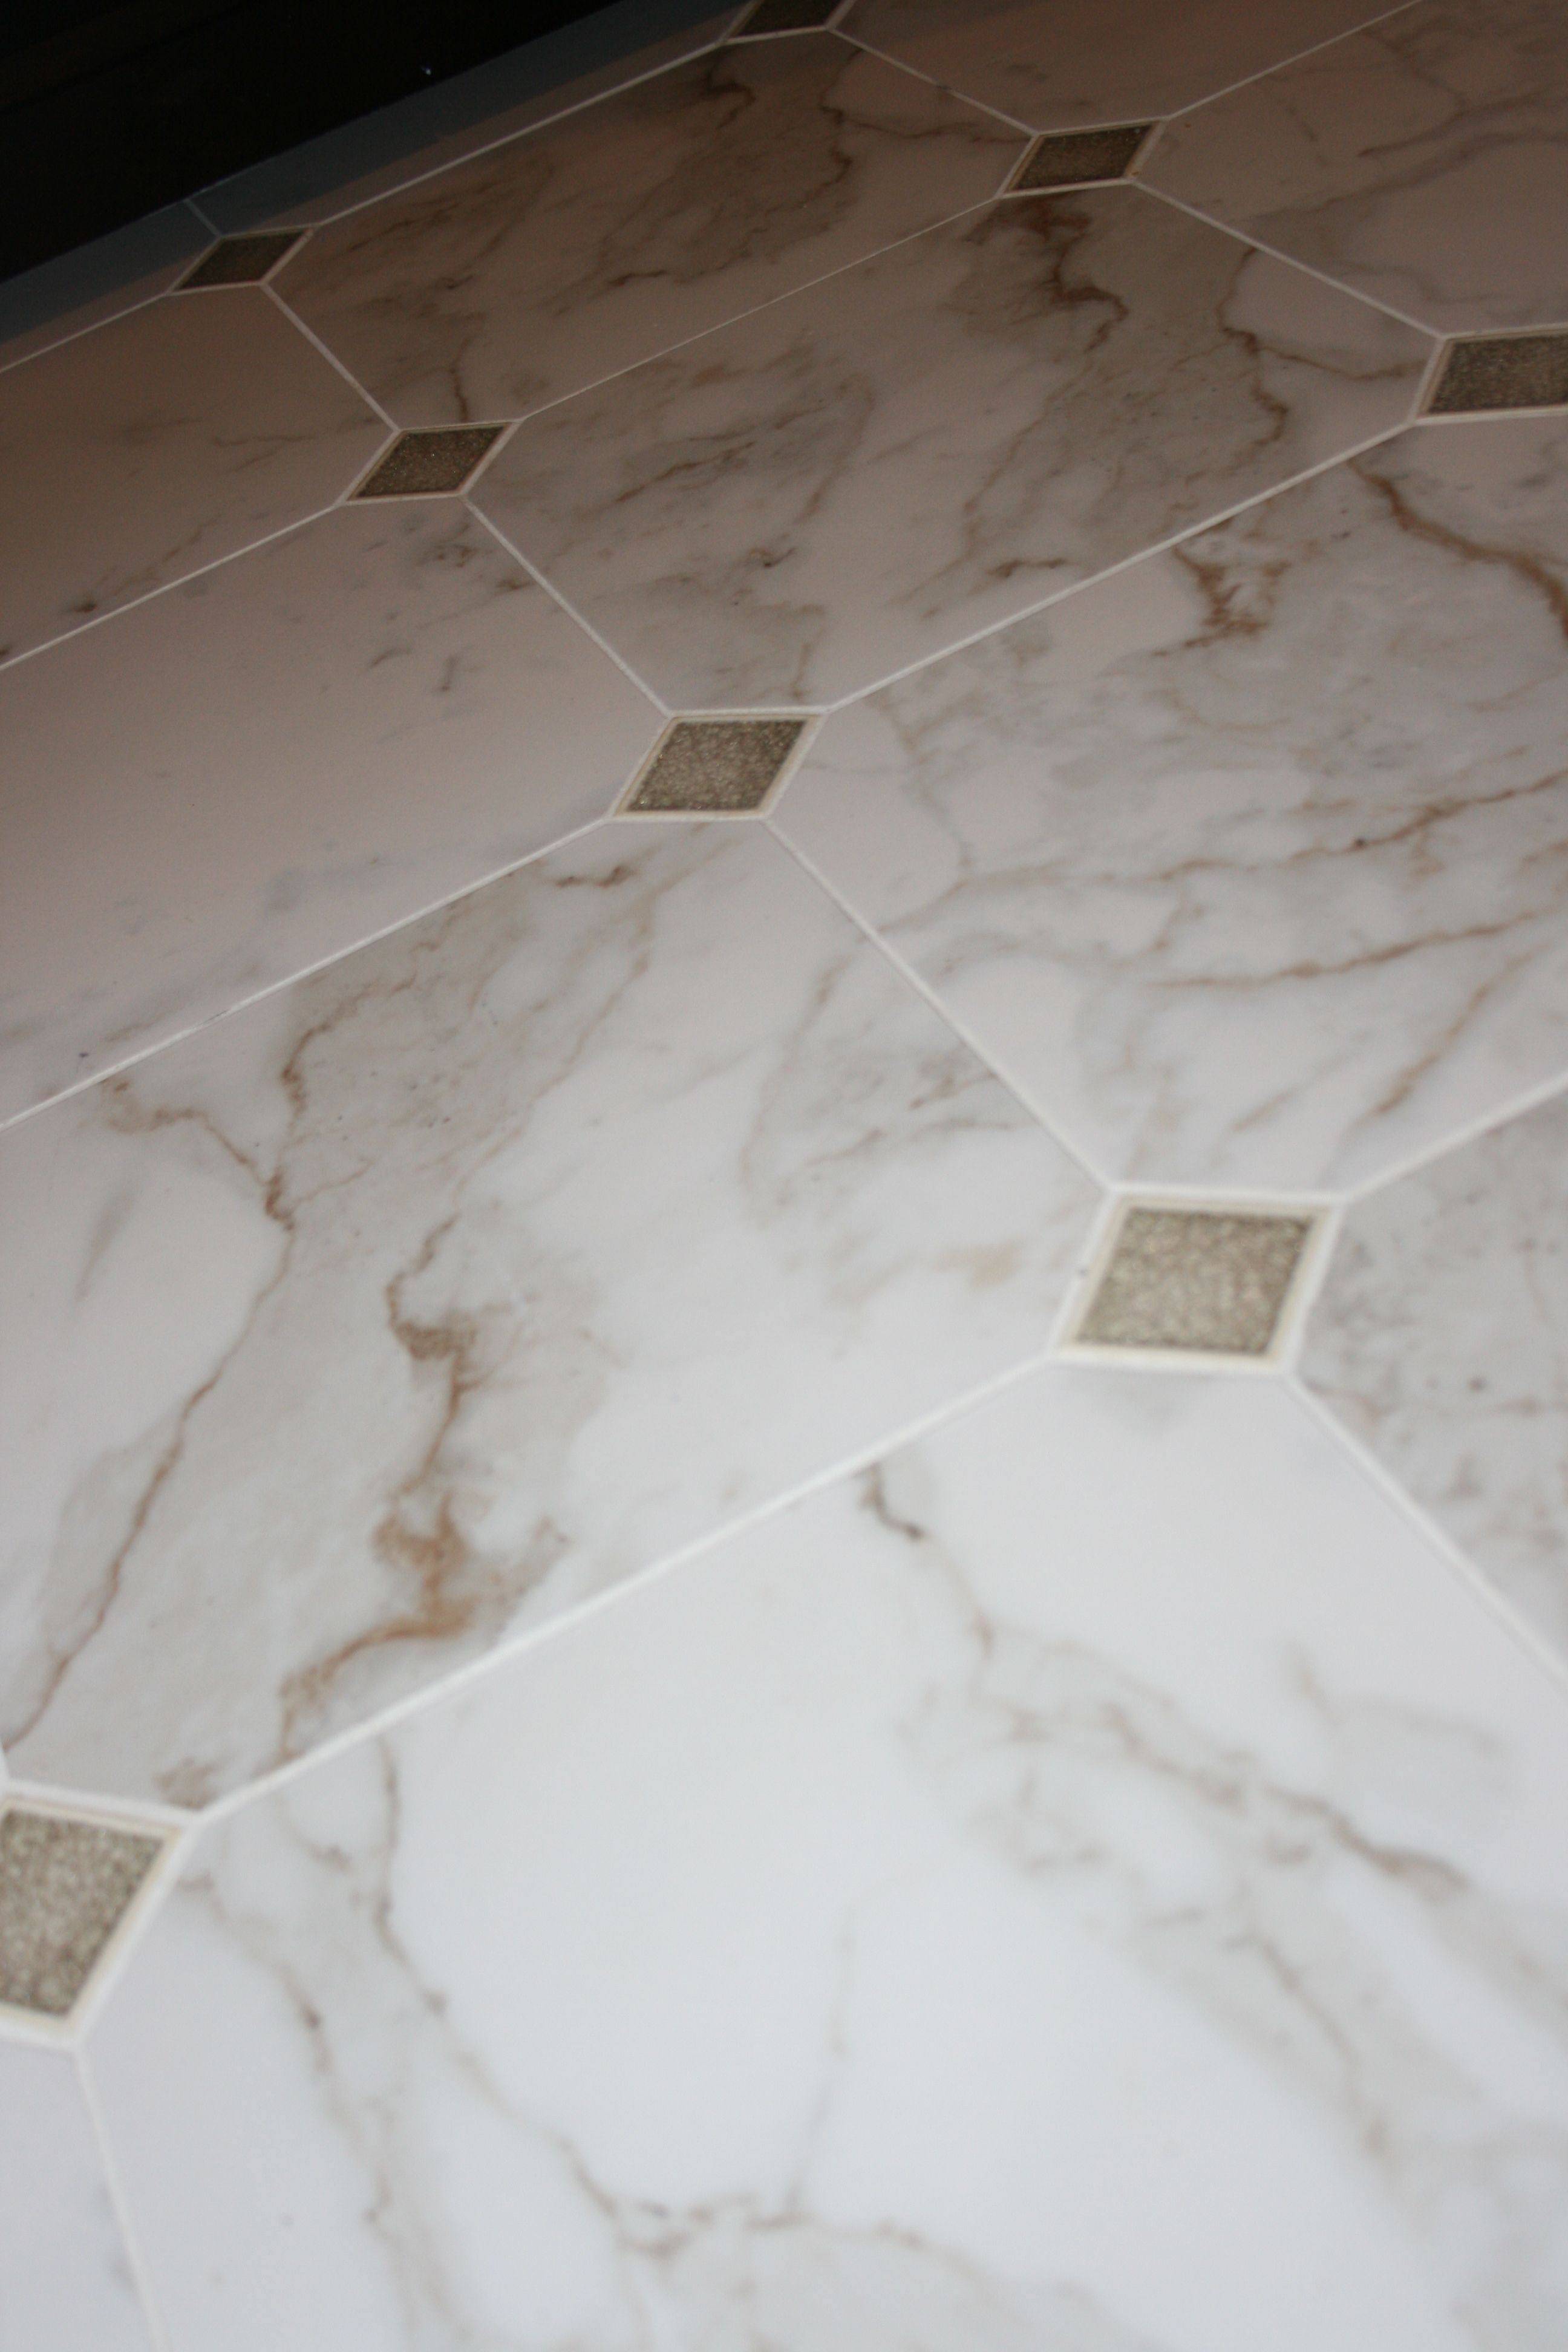 An Amazing Calacatta Knock Off Yes It S Porcelain With Some Encore Ceramic Jewel 2x2 S Clipped In Floor Tile Design Ceramic Floor Tile Glass Tile Design